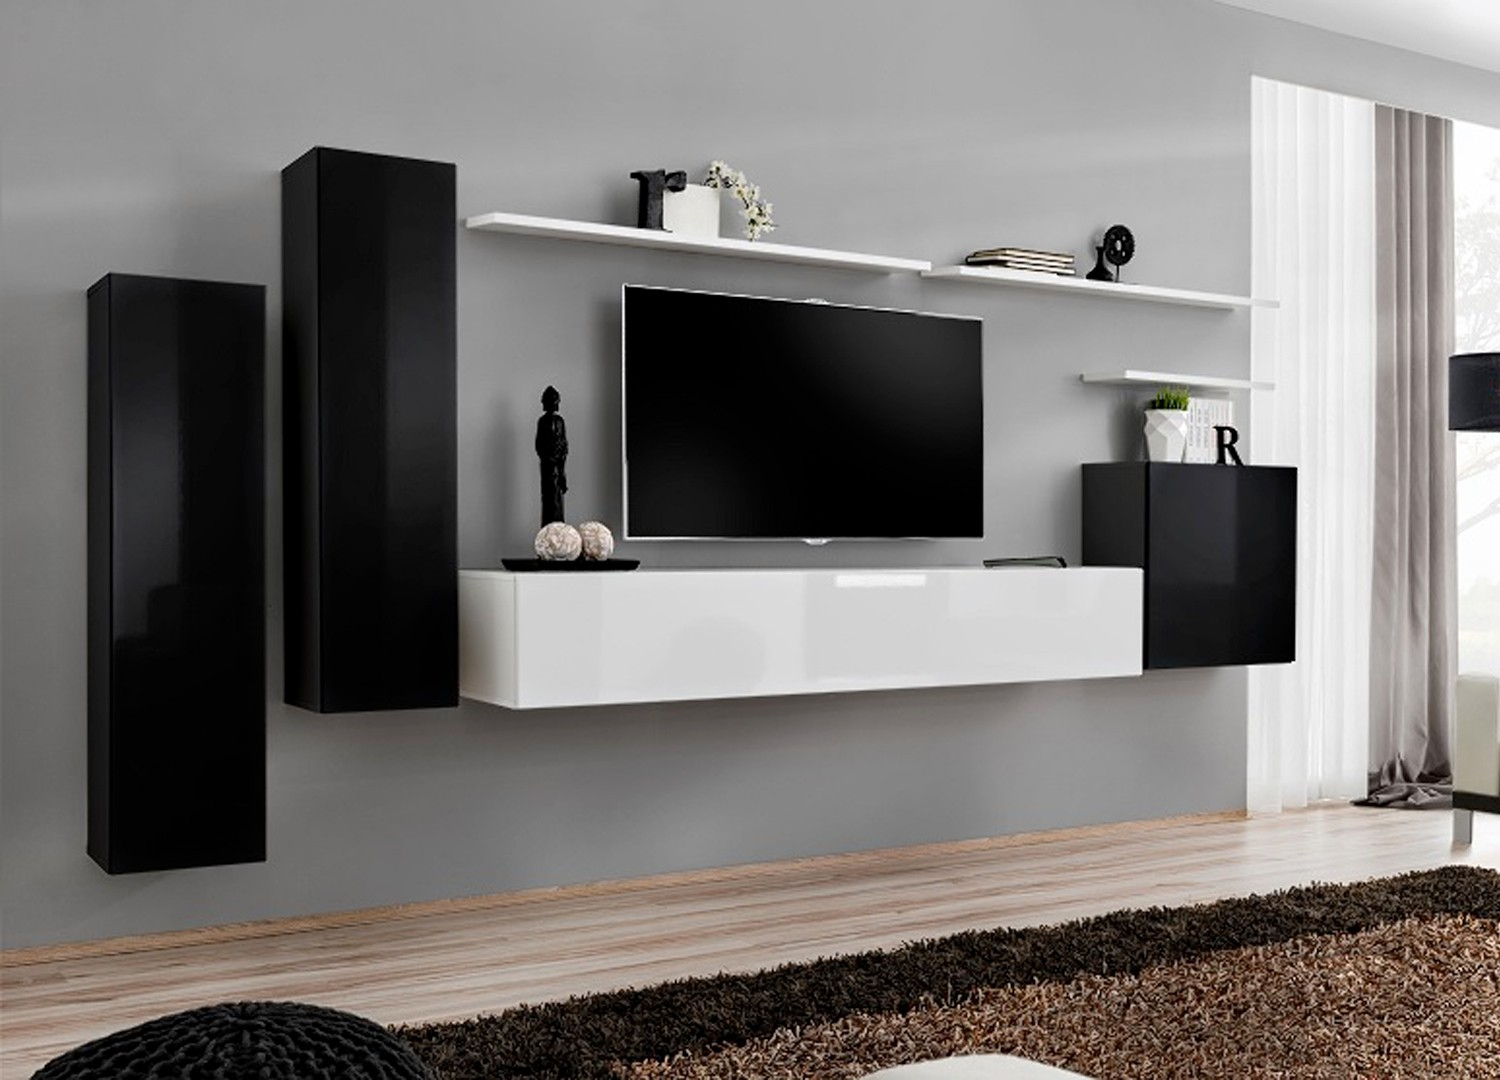 etagere murale sous tv latest etagere murale sous tv with etagere murale sous tv best ensemble. Black Bedroom Furniture Sets. Home Design Ideas